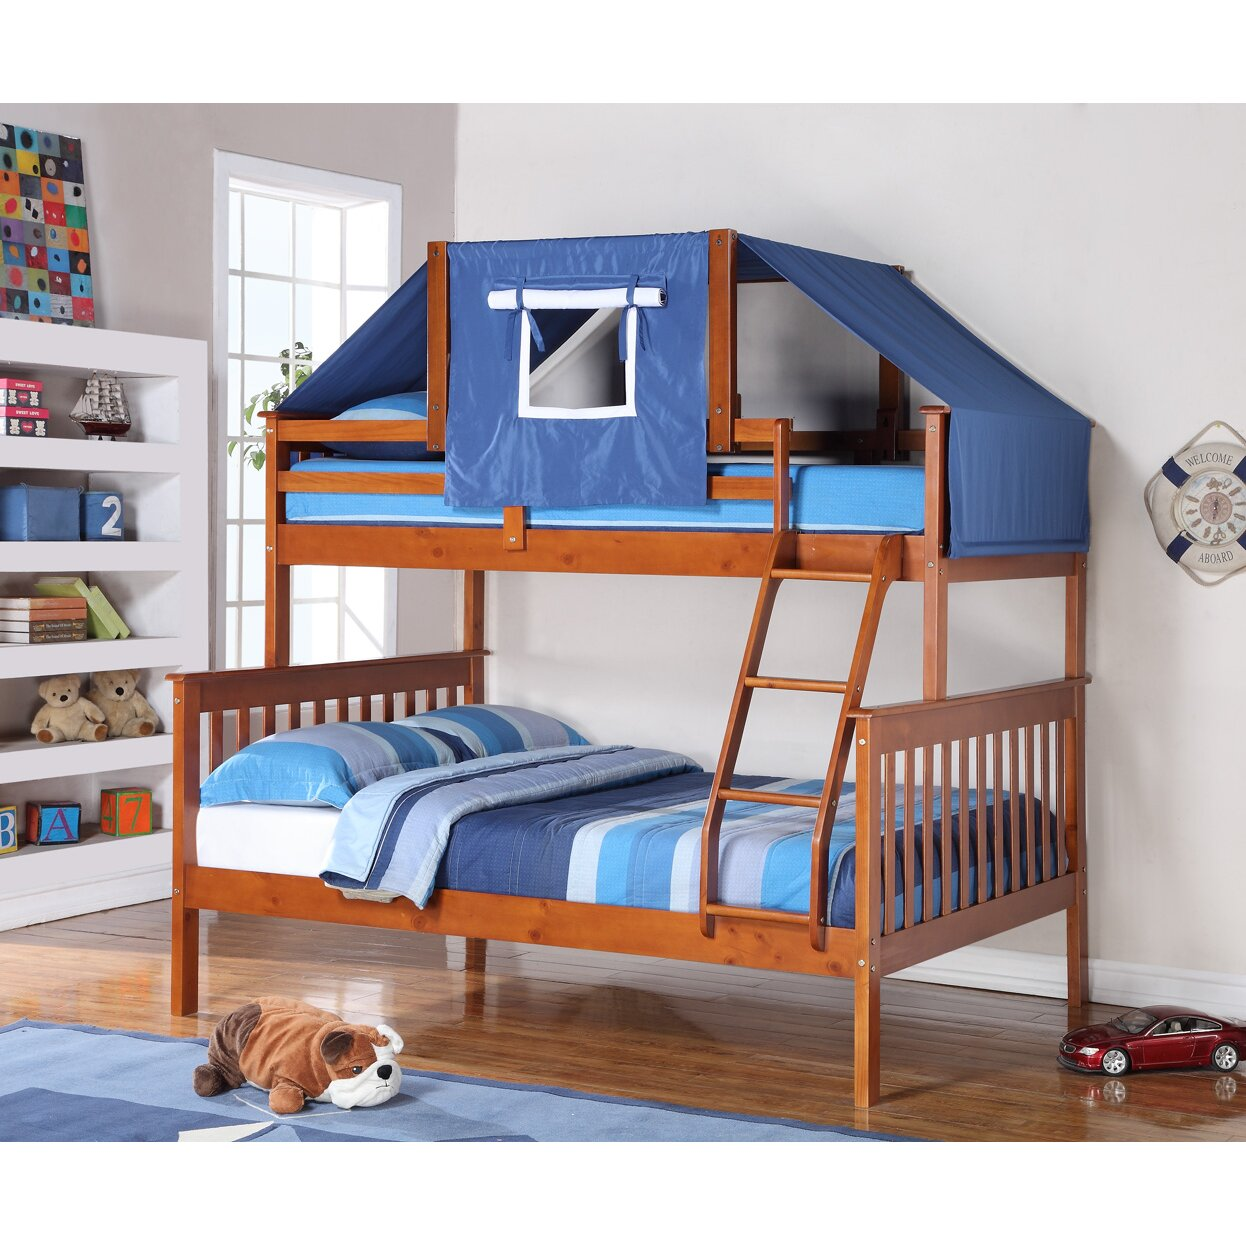 Medium image of donco kids twin over full futon bunk bed